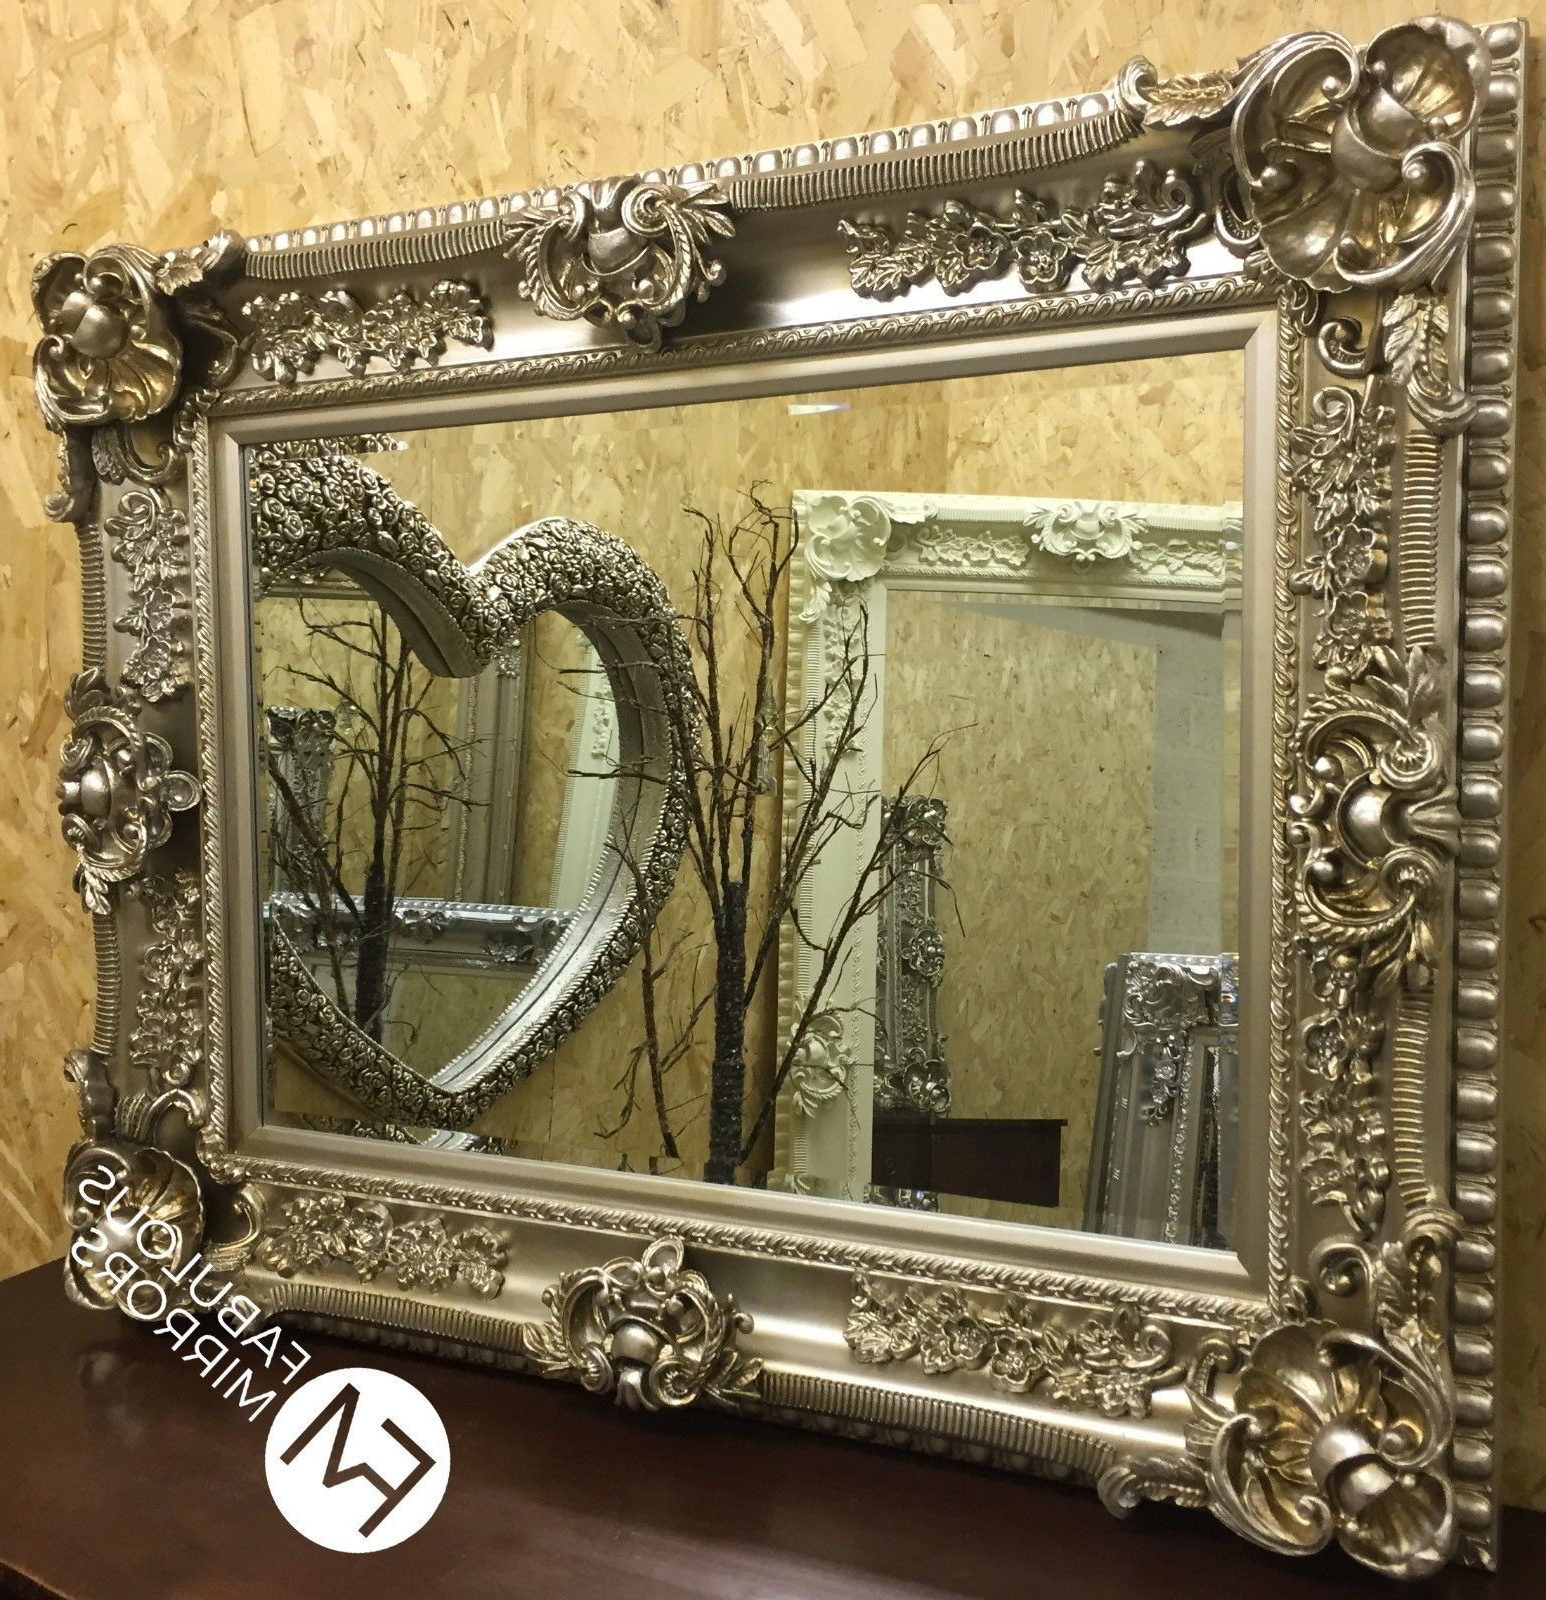 Champagne Ornate Regal Chunky Decorative Wall Mirror – Rrp £449 – Valentina With Regard To Most Up To Date Champagne Wall Mirrors (View 12 of 20)